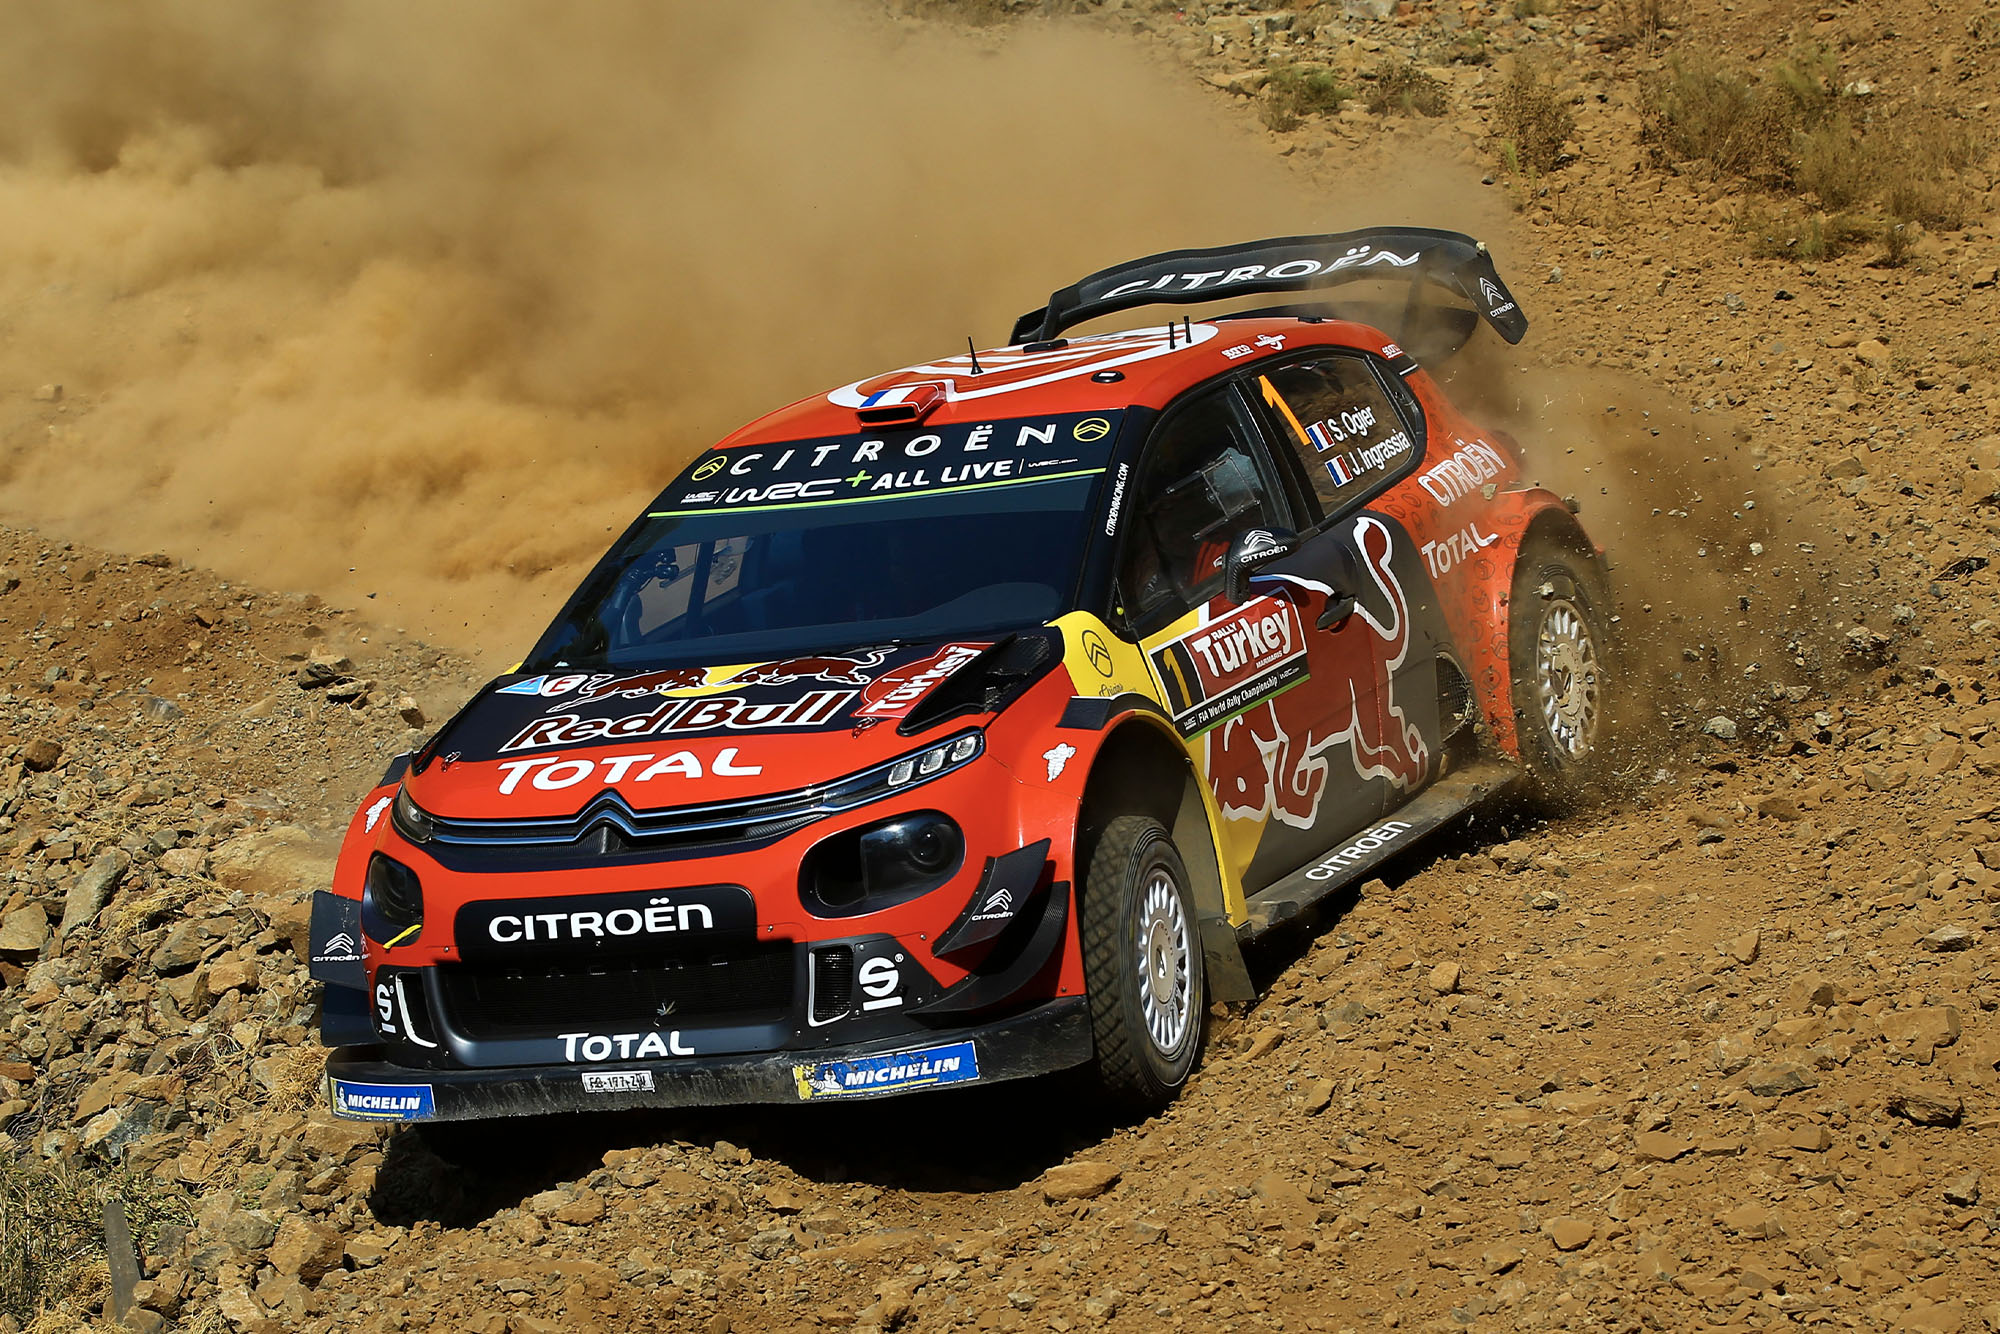 Citroen Racing World Rally Team